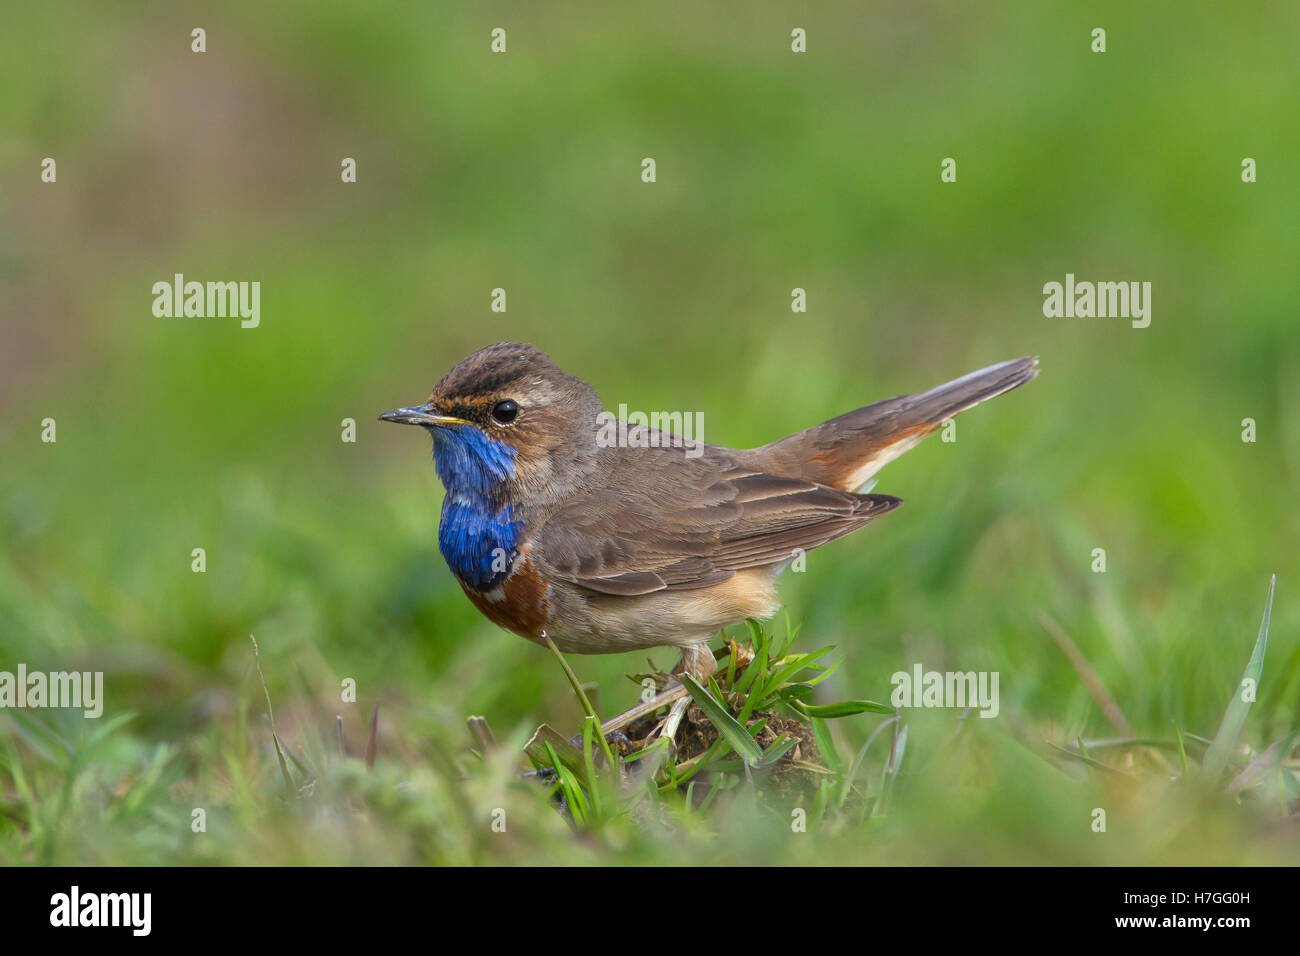 White-spotted bluethroat (Luscinia svecica cyanecula) male on the ground in meadow in spring - Stock Image